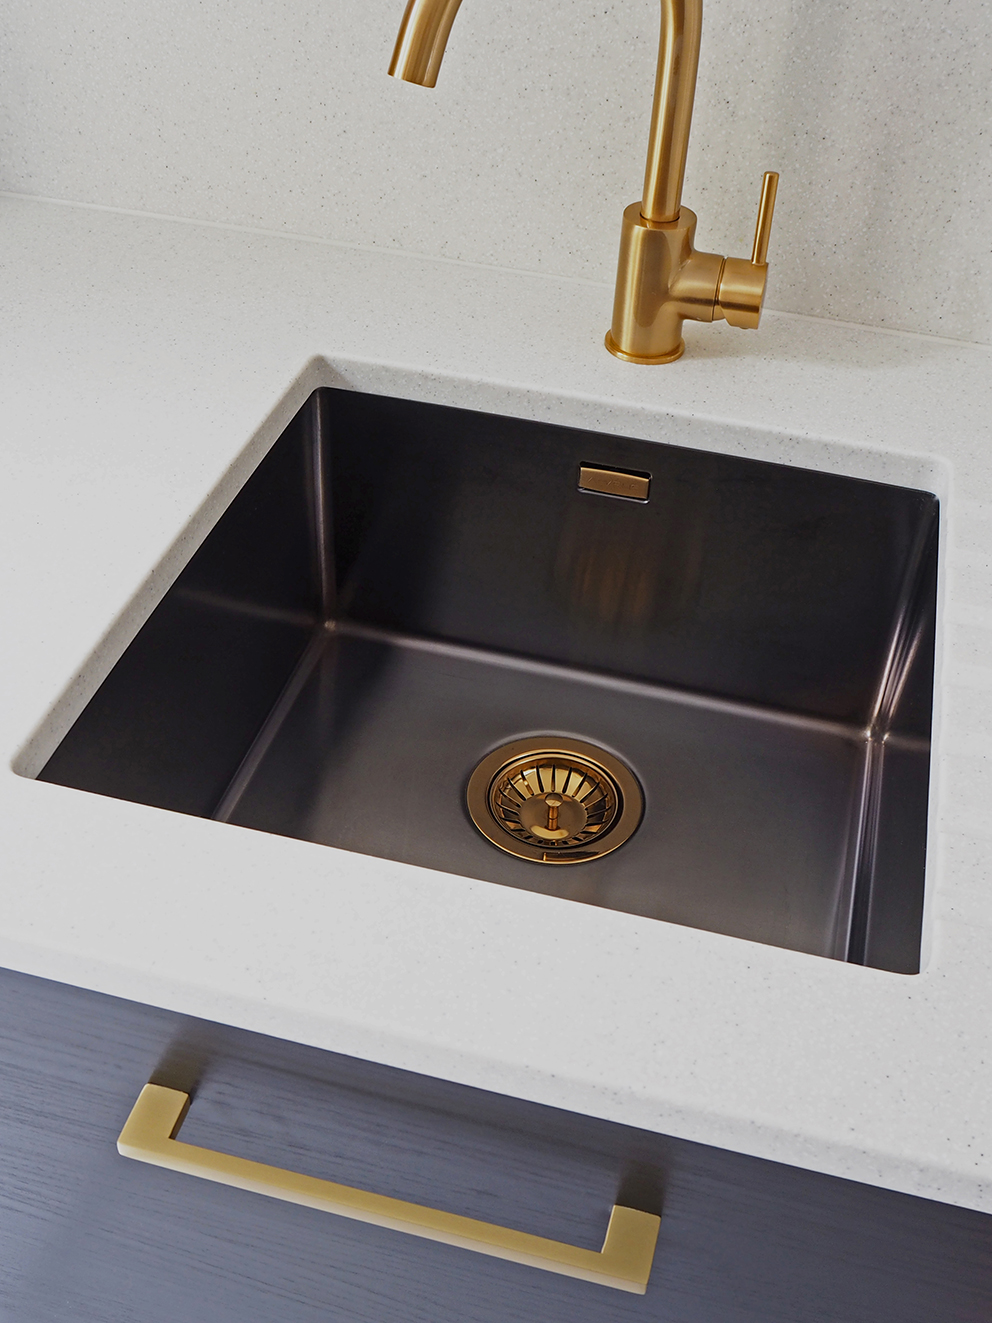 French For Pineapple Blog - contemporary gold brass tap with anthracite undermounted sink with gold waste and pale flecked mistral mist worktop and splashback